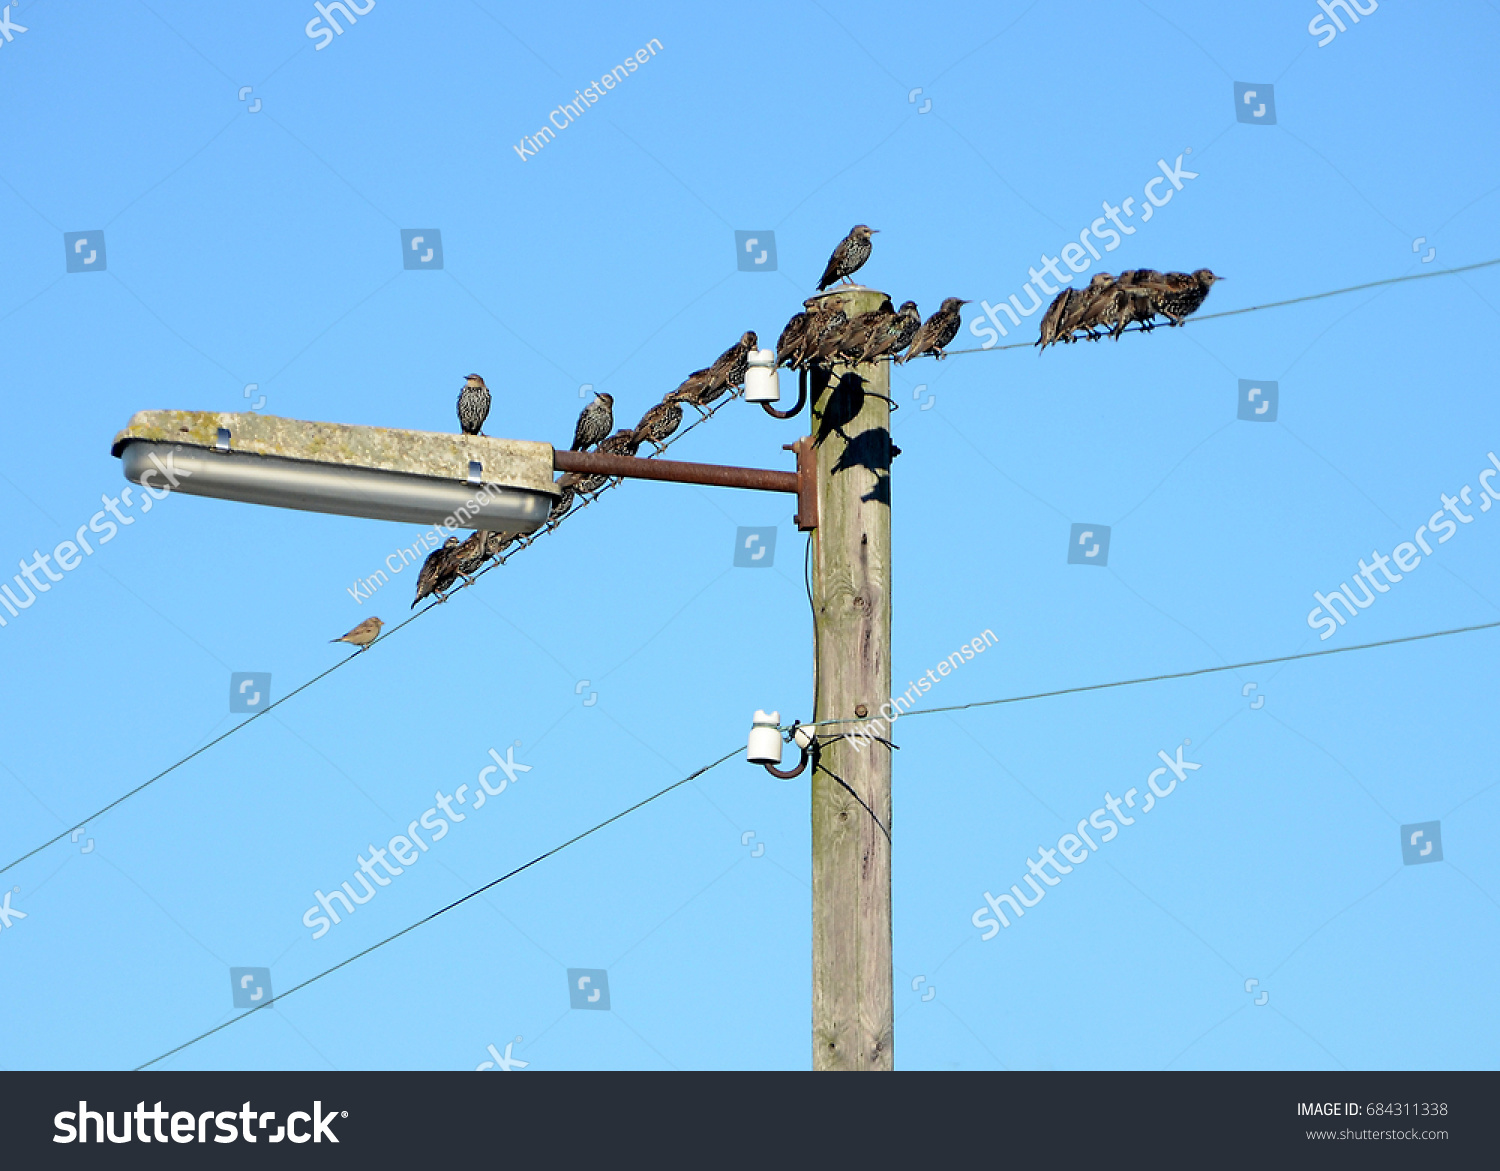 Old wooden lamp post wires occupied stock photo royalty free old wooden lamp post with wires occupied by starlings ready for winter migration aloadofball Images